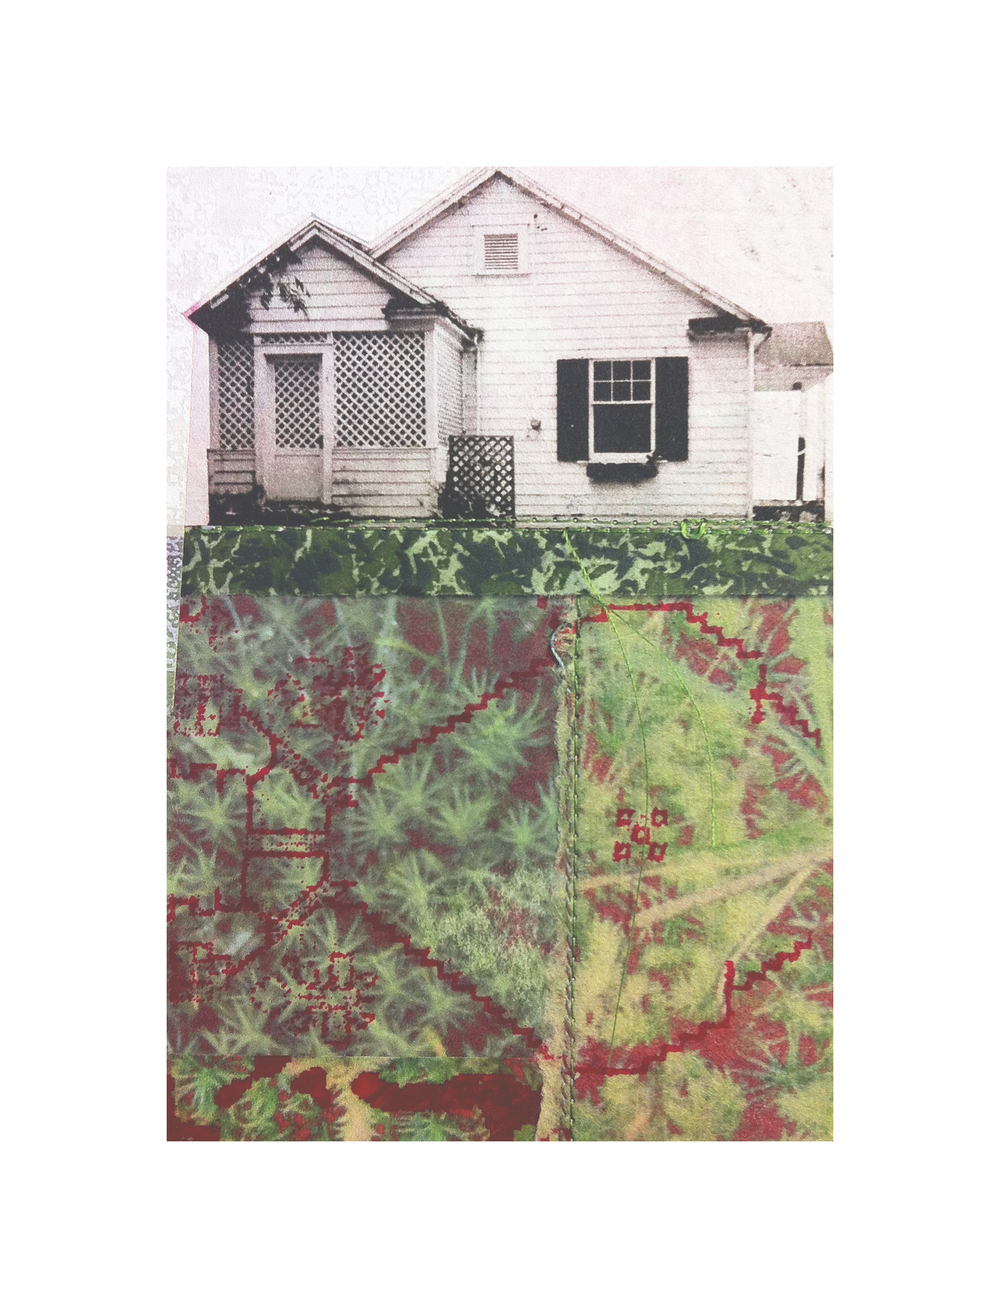 "Lawnside Tapestry 10   Etching, chine colle, screenprint, thread  8"" x 10"", 2013"